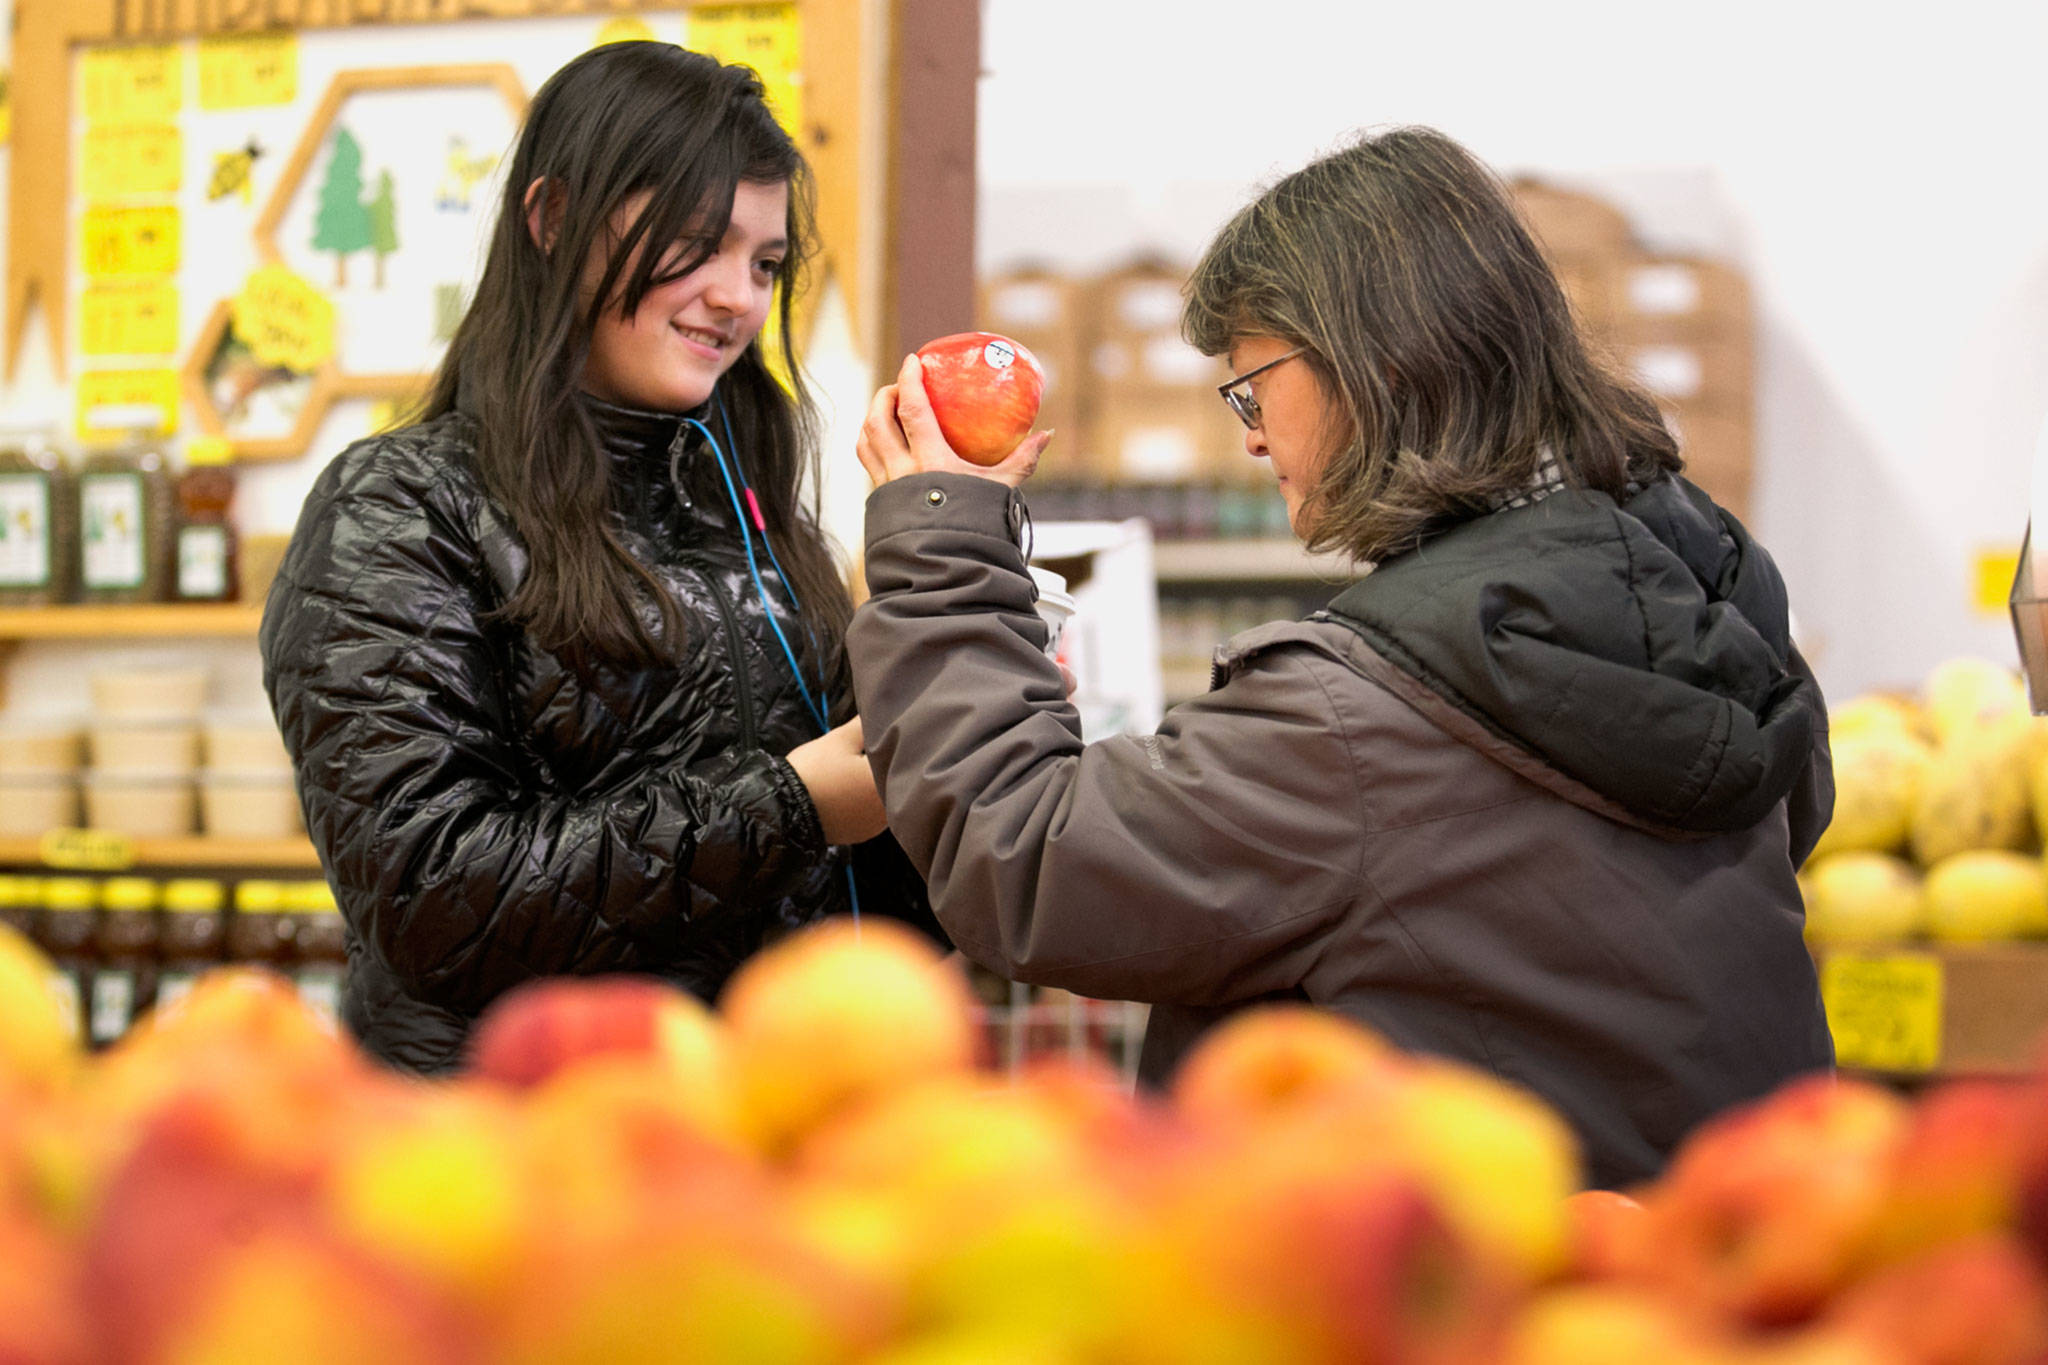 Olivia Nishimoto (left) and her mother, Ginger Nishimoto, browse apples Thursday night at Produce Place in Marysville. (Kevin Clark / The Daily Herald)